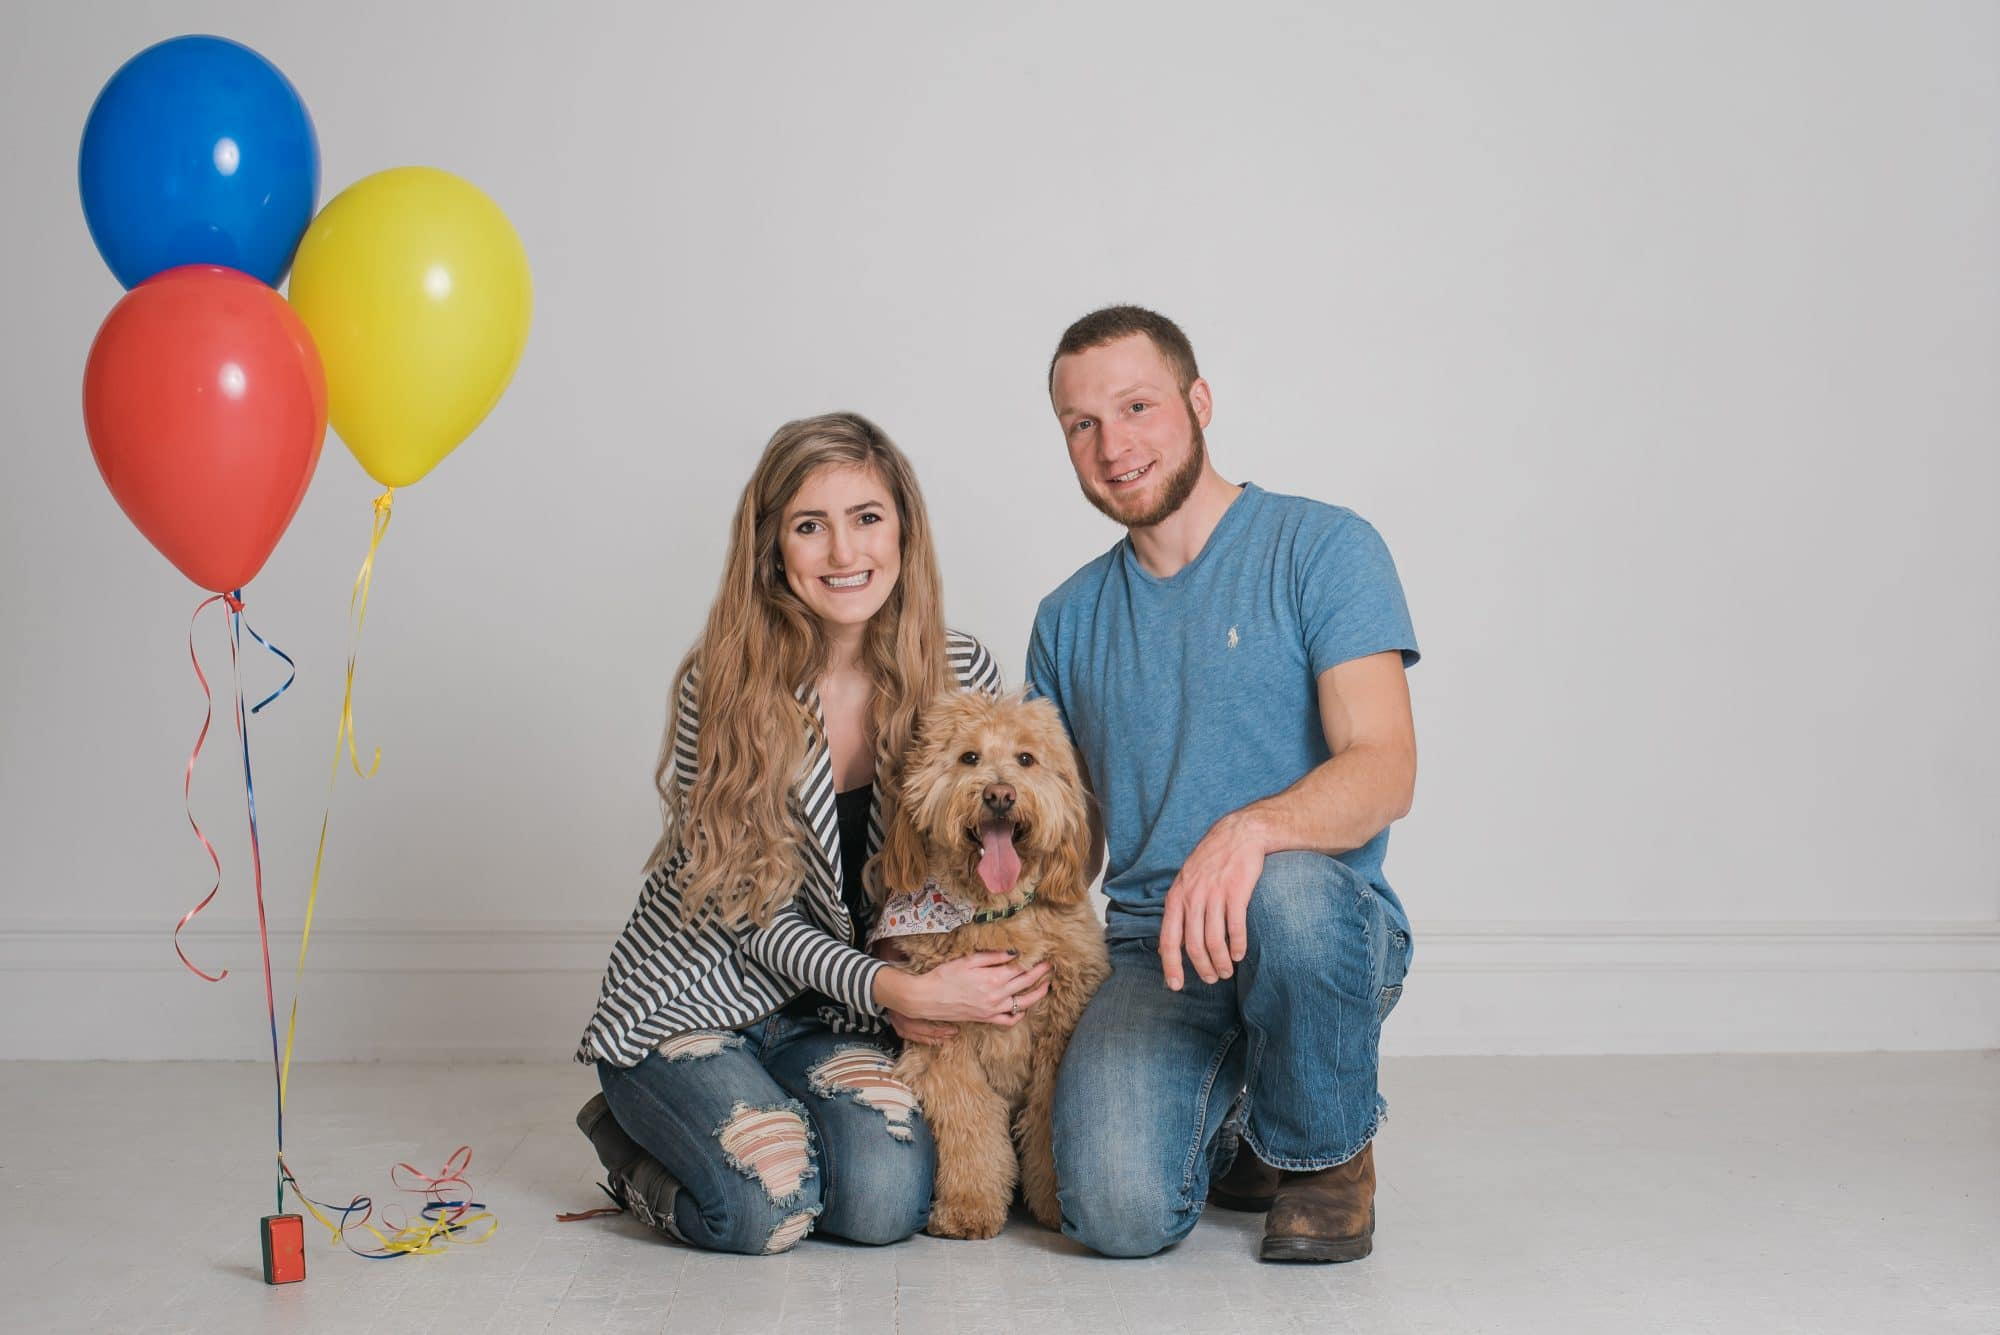 Dog First Birthday Photos | Dog Photo Session | Lafayette Indiana Photographer | Lafayette Indiana Dog Photographer | Luminant Photography | Victoria Rayburn